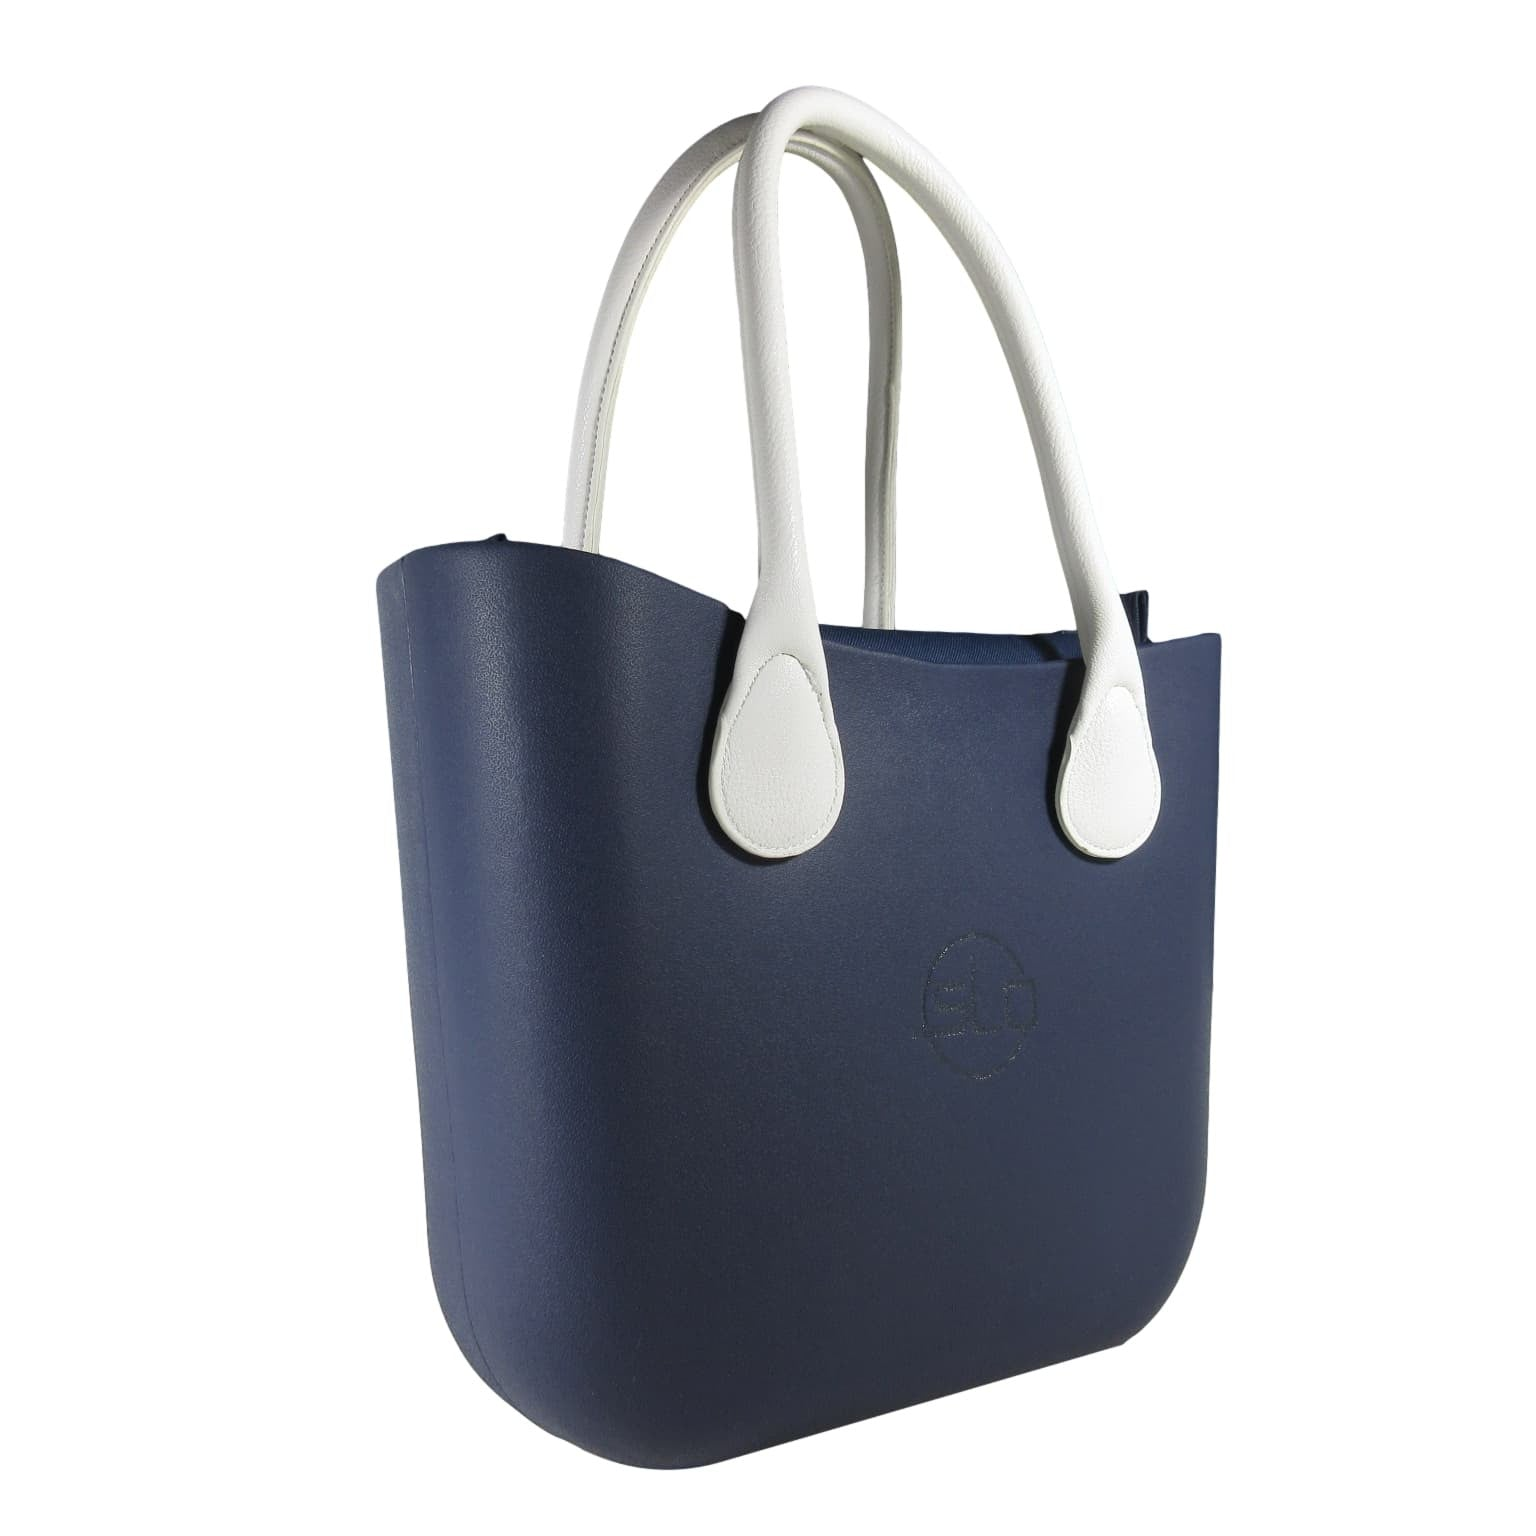 SLOW SLO Fashion Basic Bag is the foundation of your designer Handbag Tote